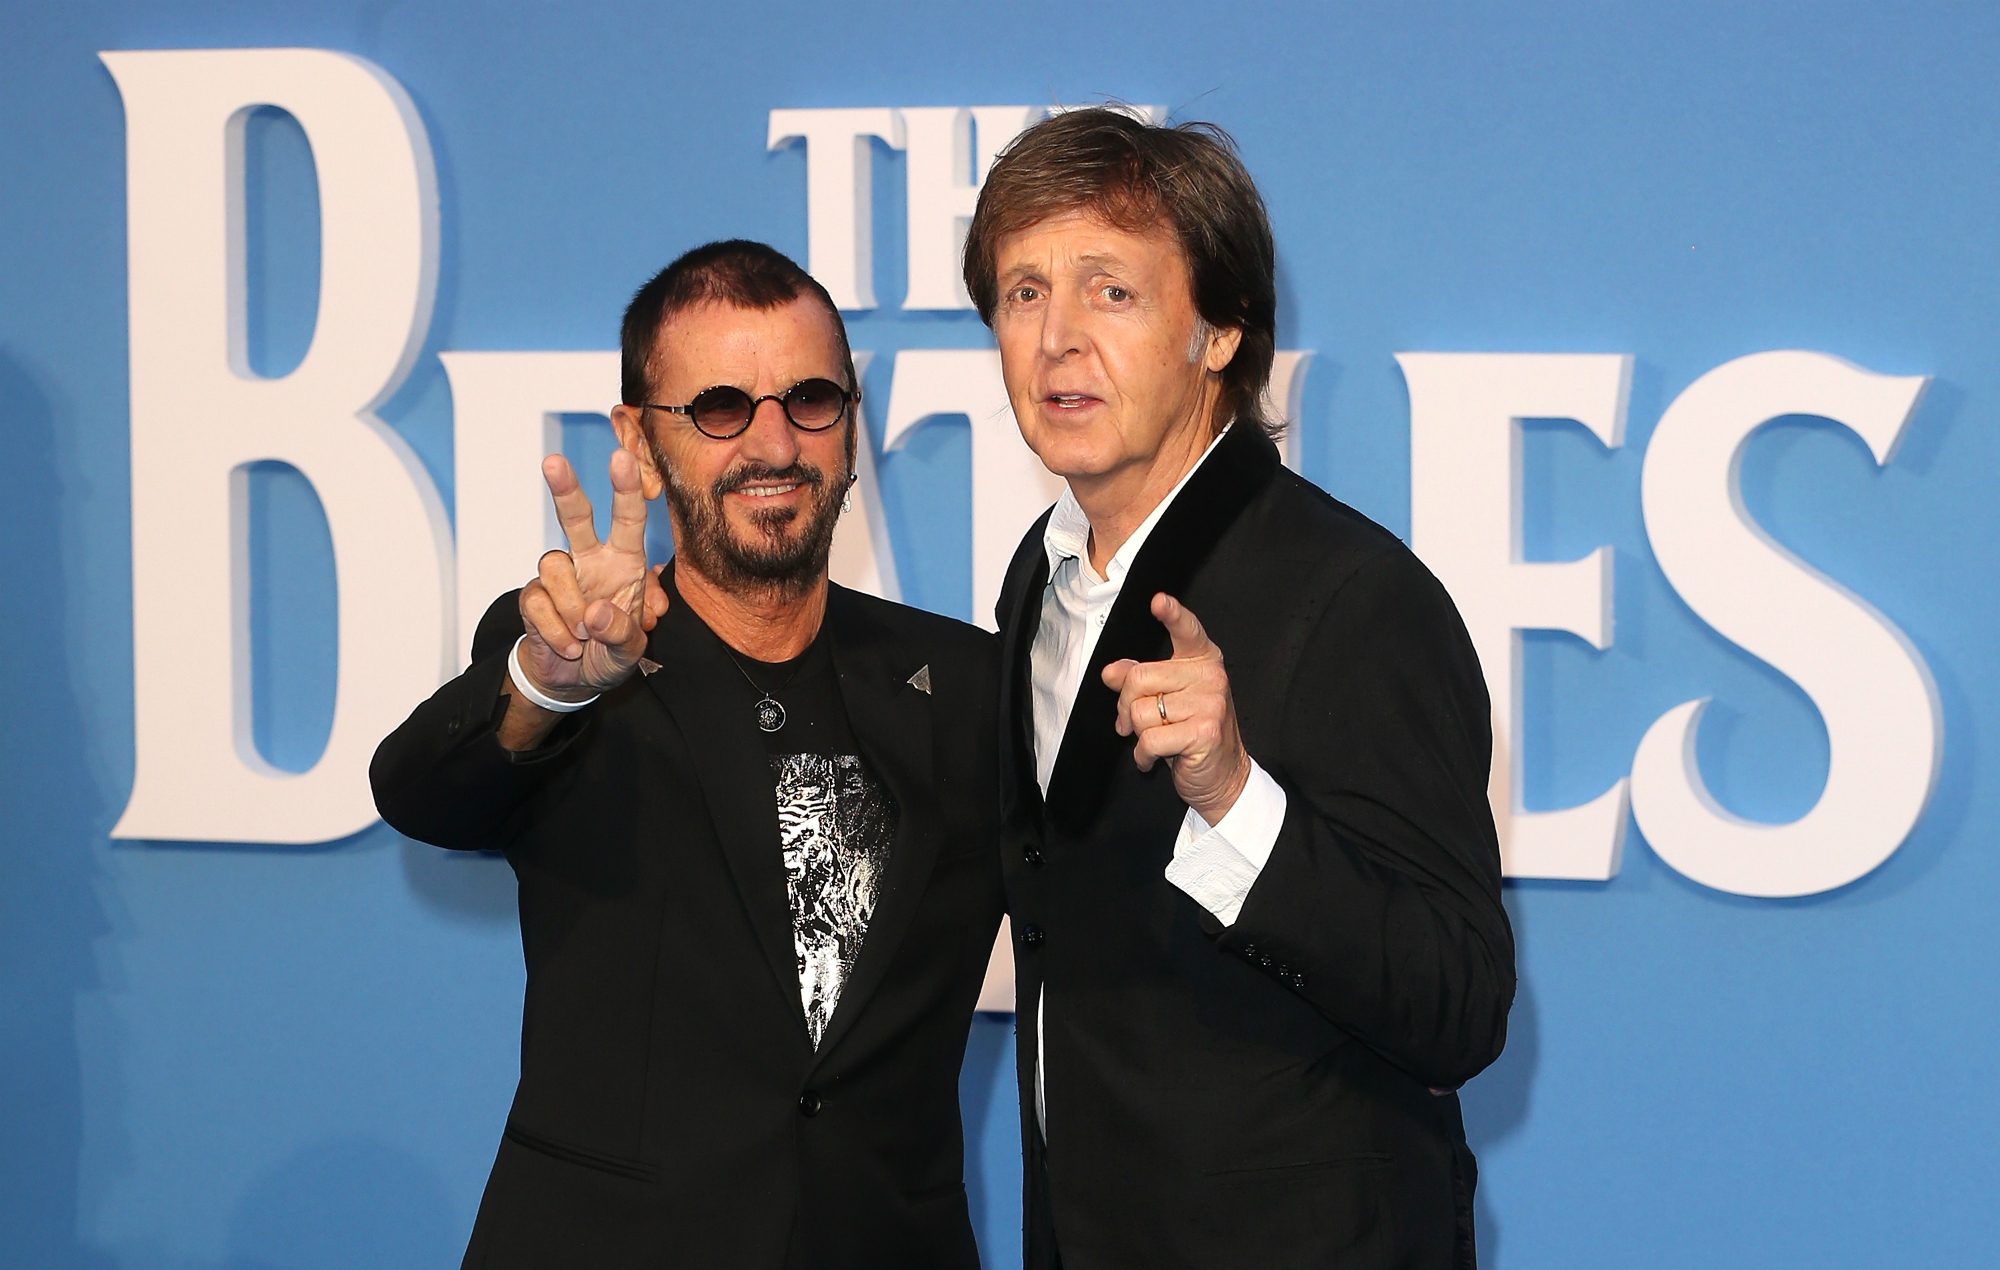 It S Beatlemania At The O2 As Ringo Starr Is Spotted In